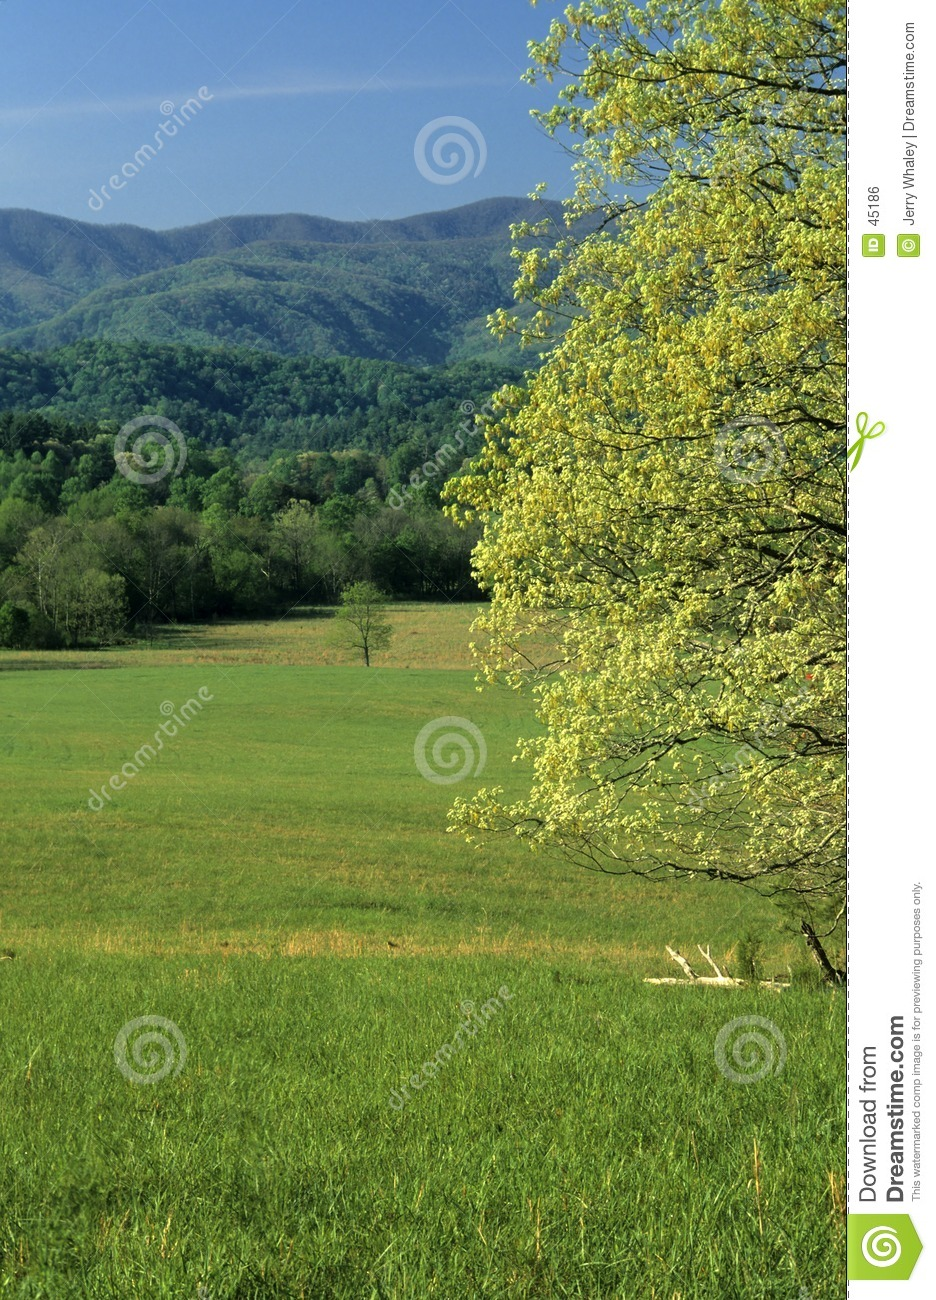 Spring, Fields, Mountains